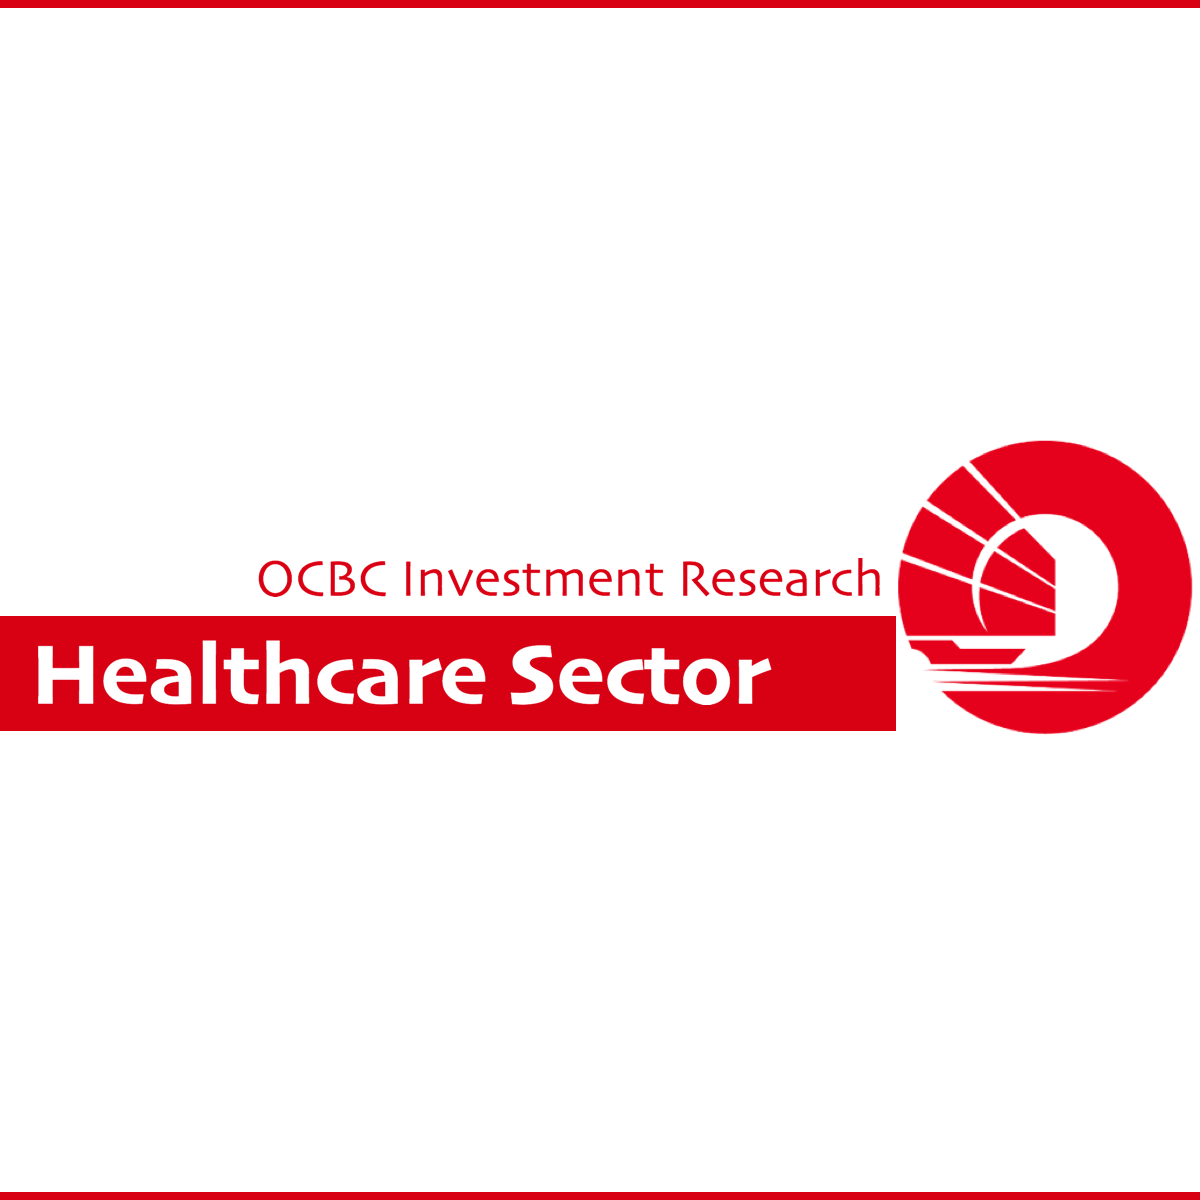 Healthcare Sector - OCBC Investment 2017-06-09: Medical Tourism Still A Concern